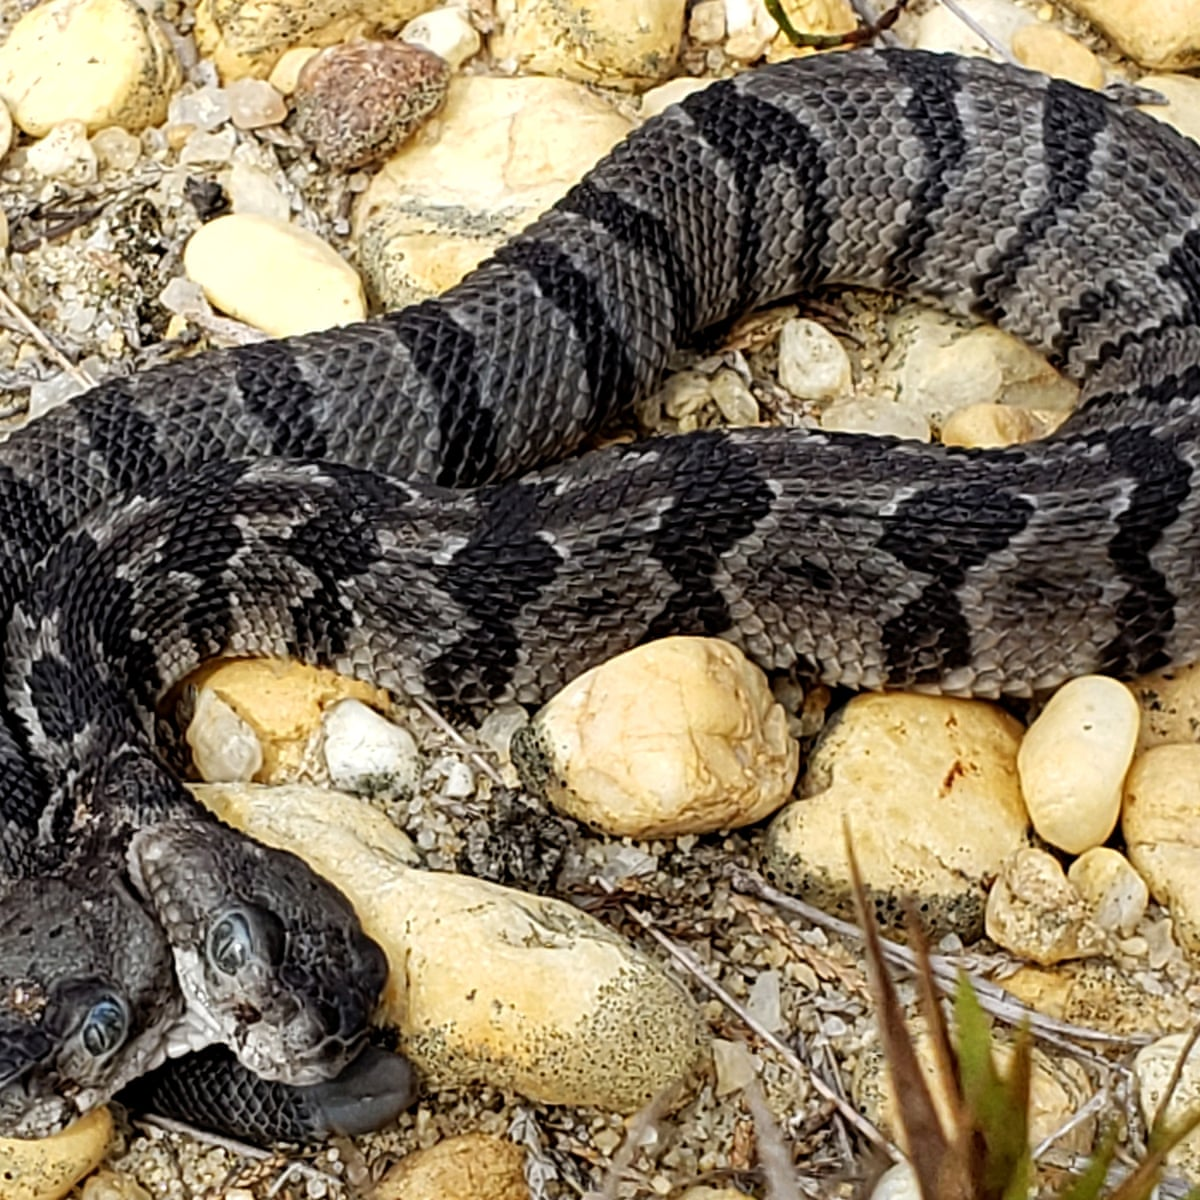 Rare Two Headed Snake Nicknamed Double Dave Is Found In Us Snakes The Guardian